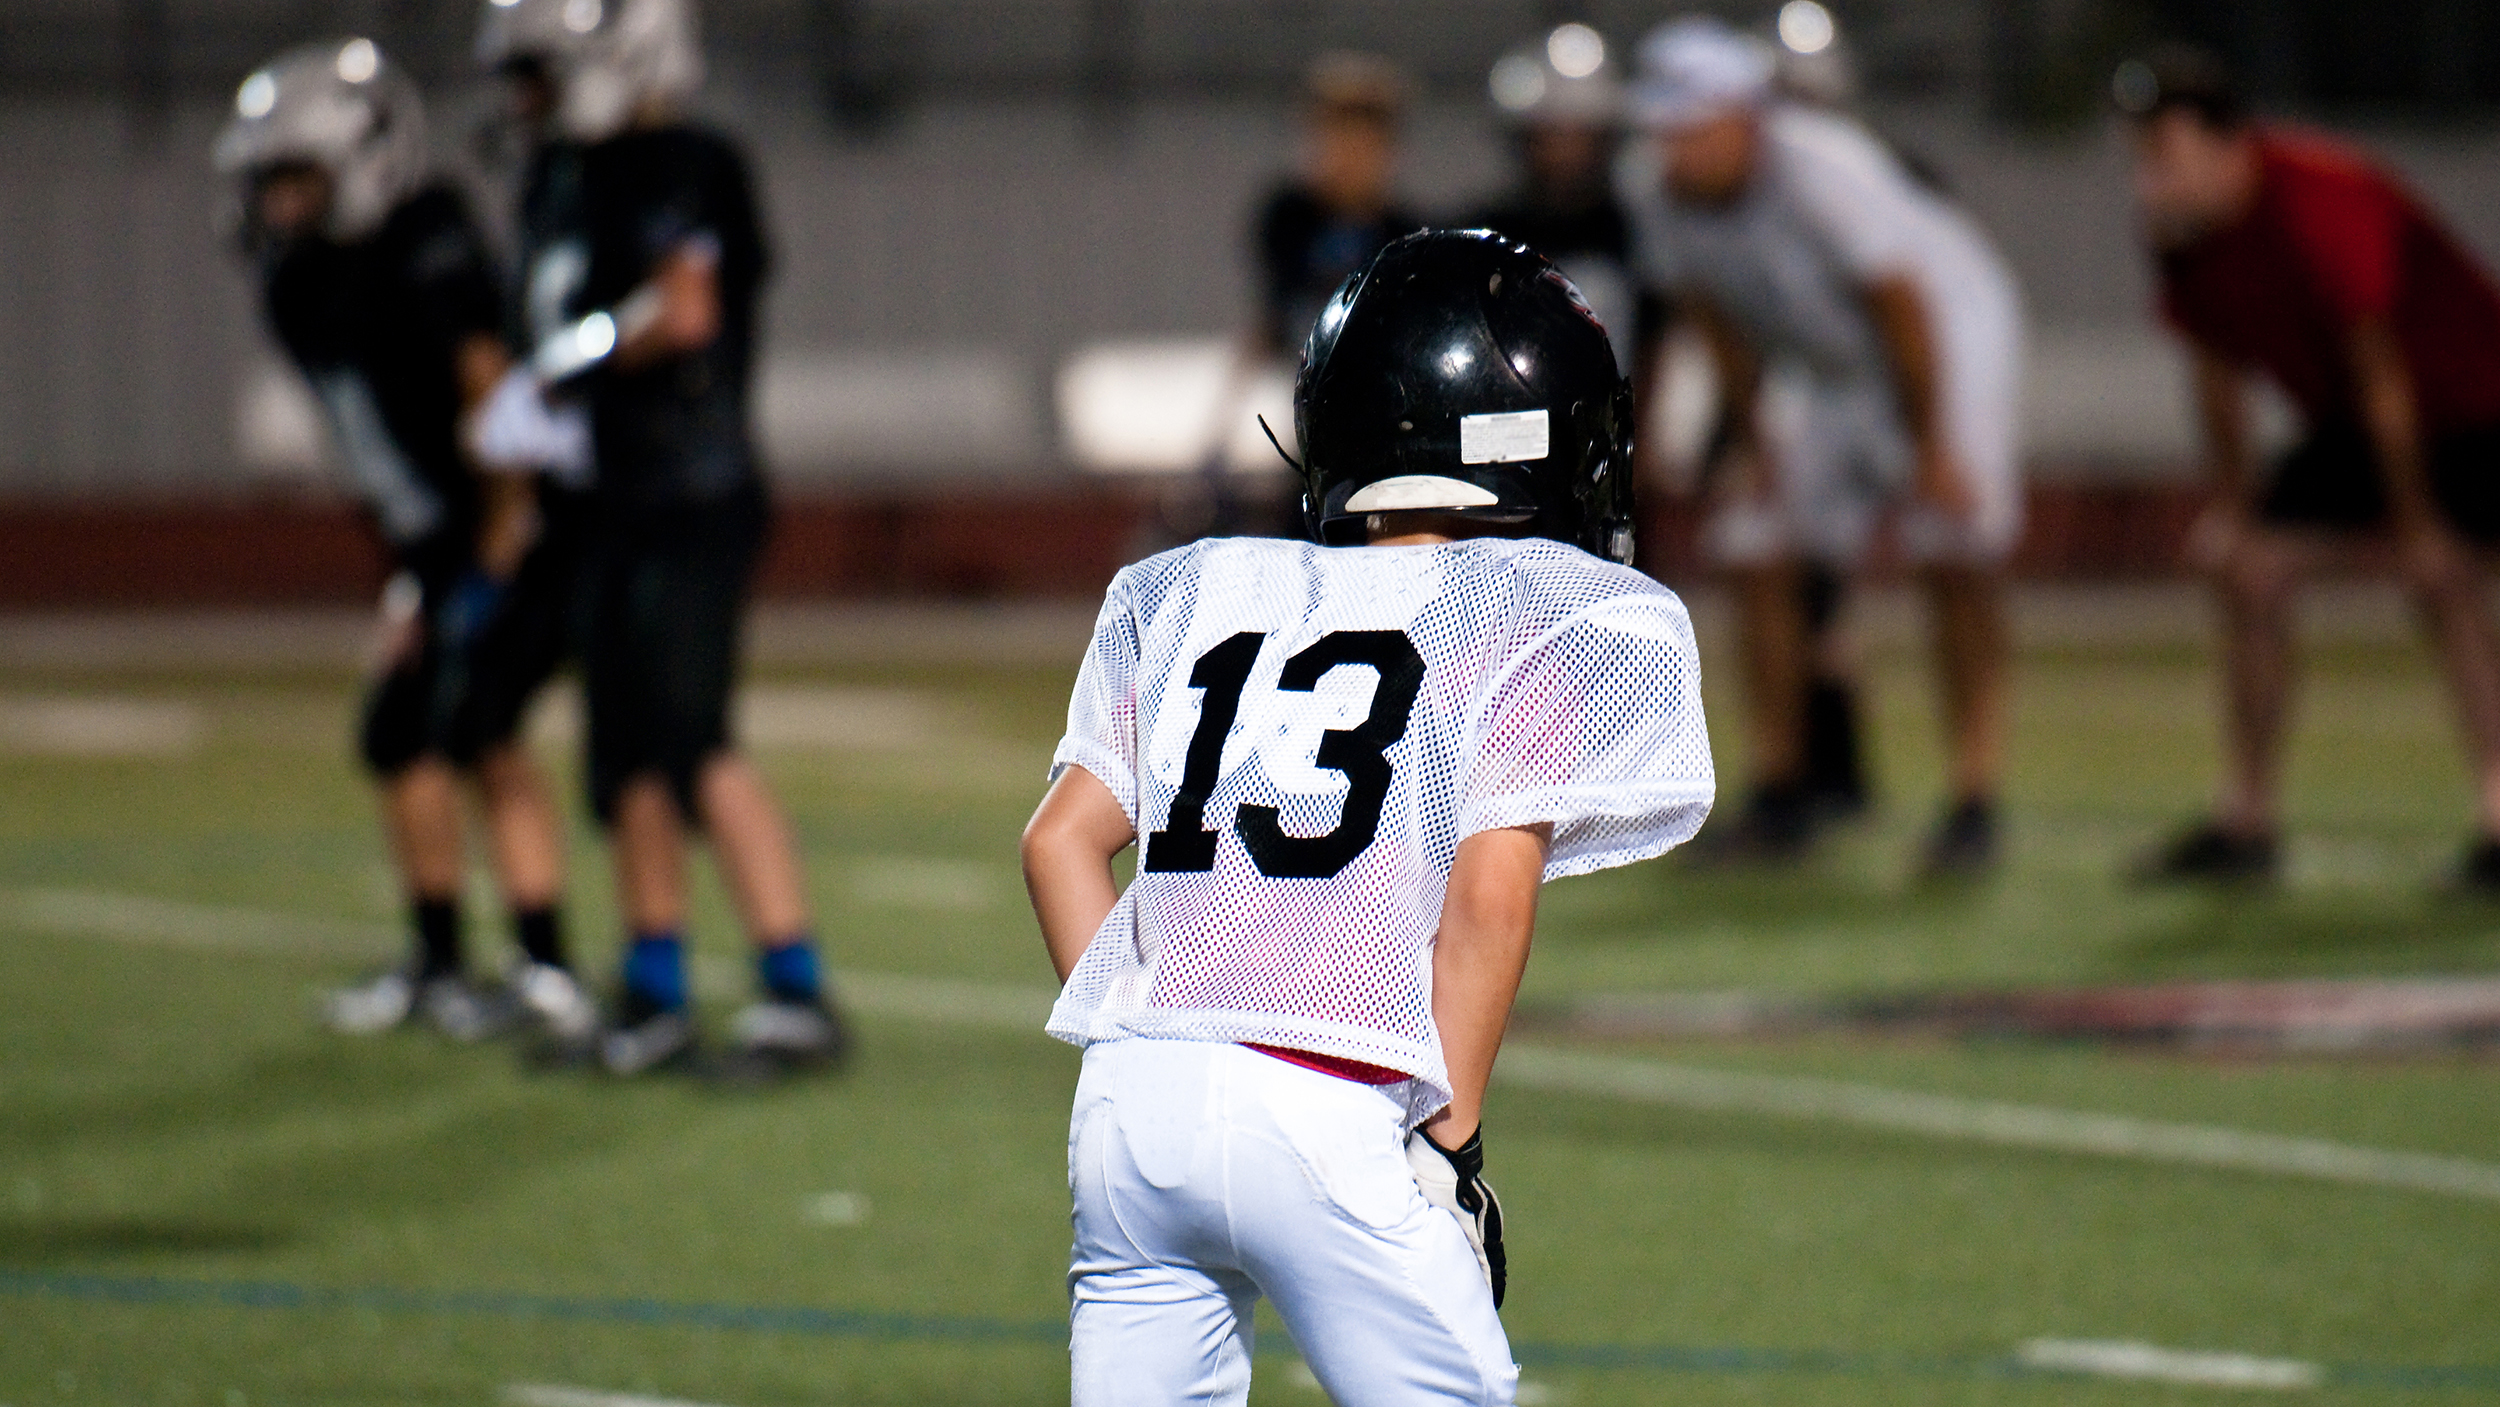 Is football safe for kids? Study looks at brain changes ...